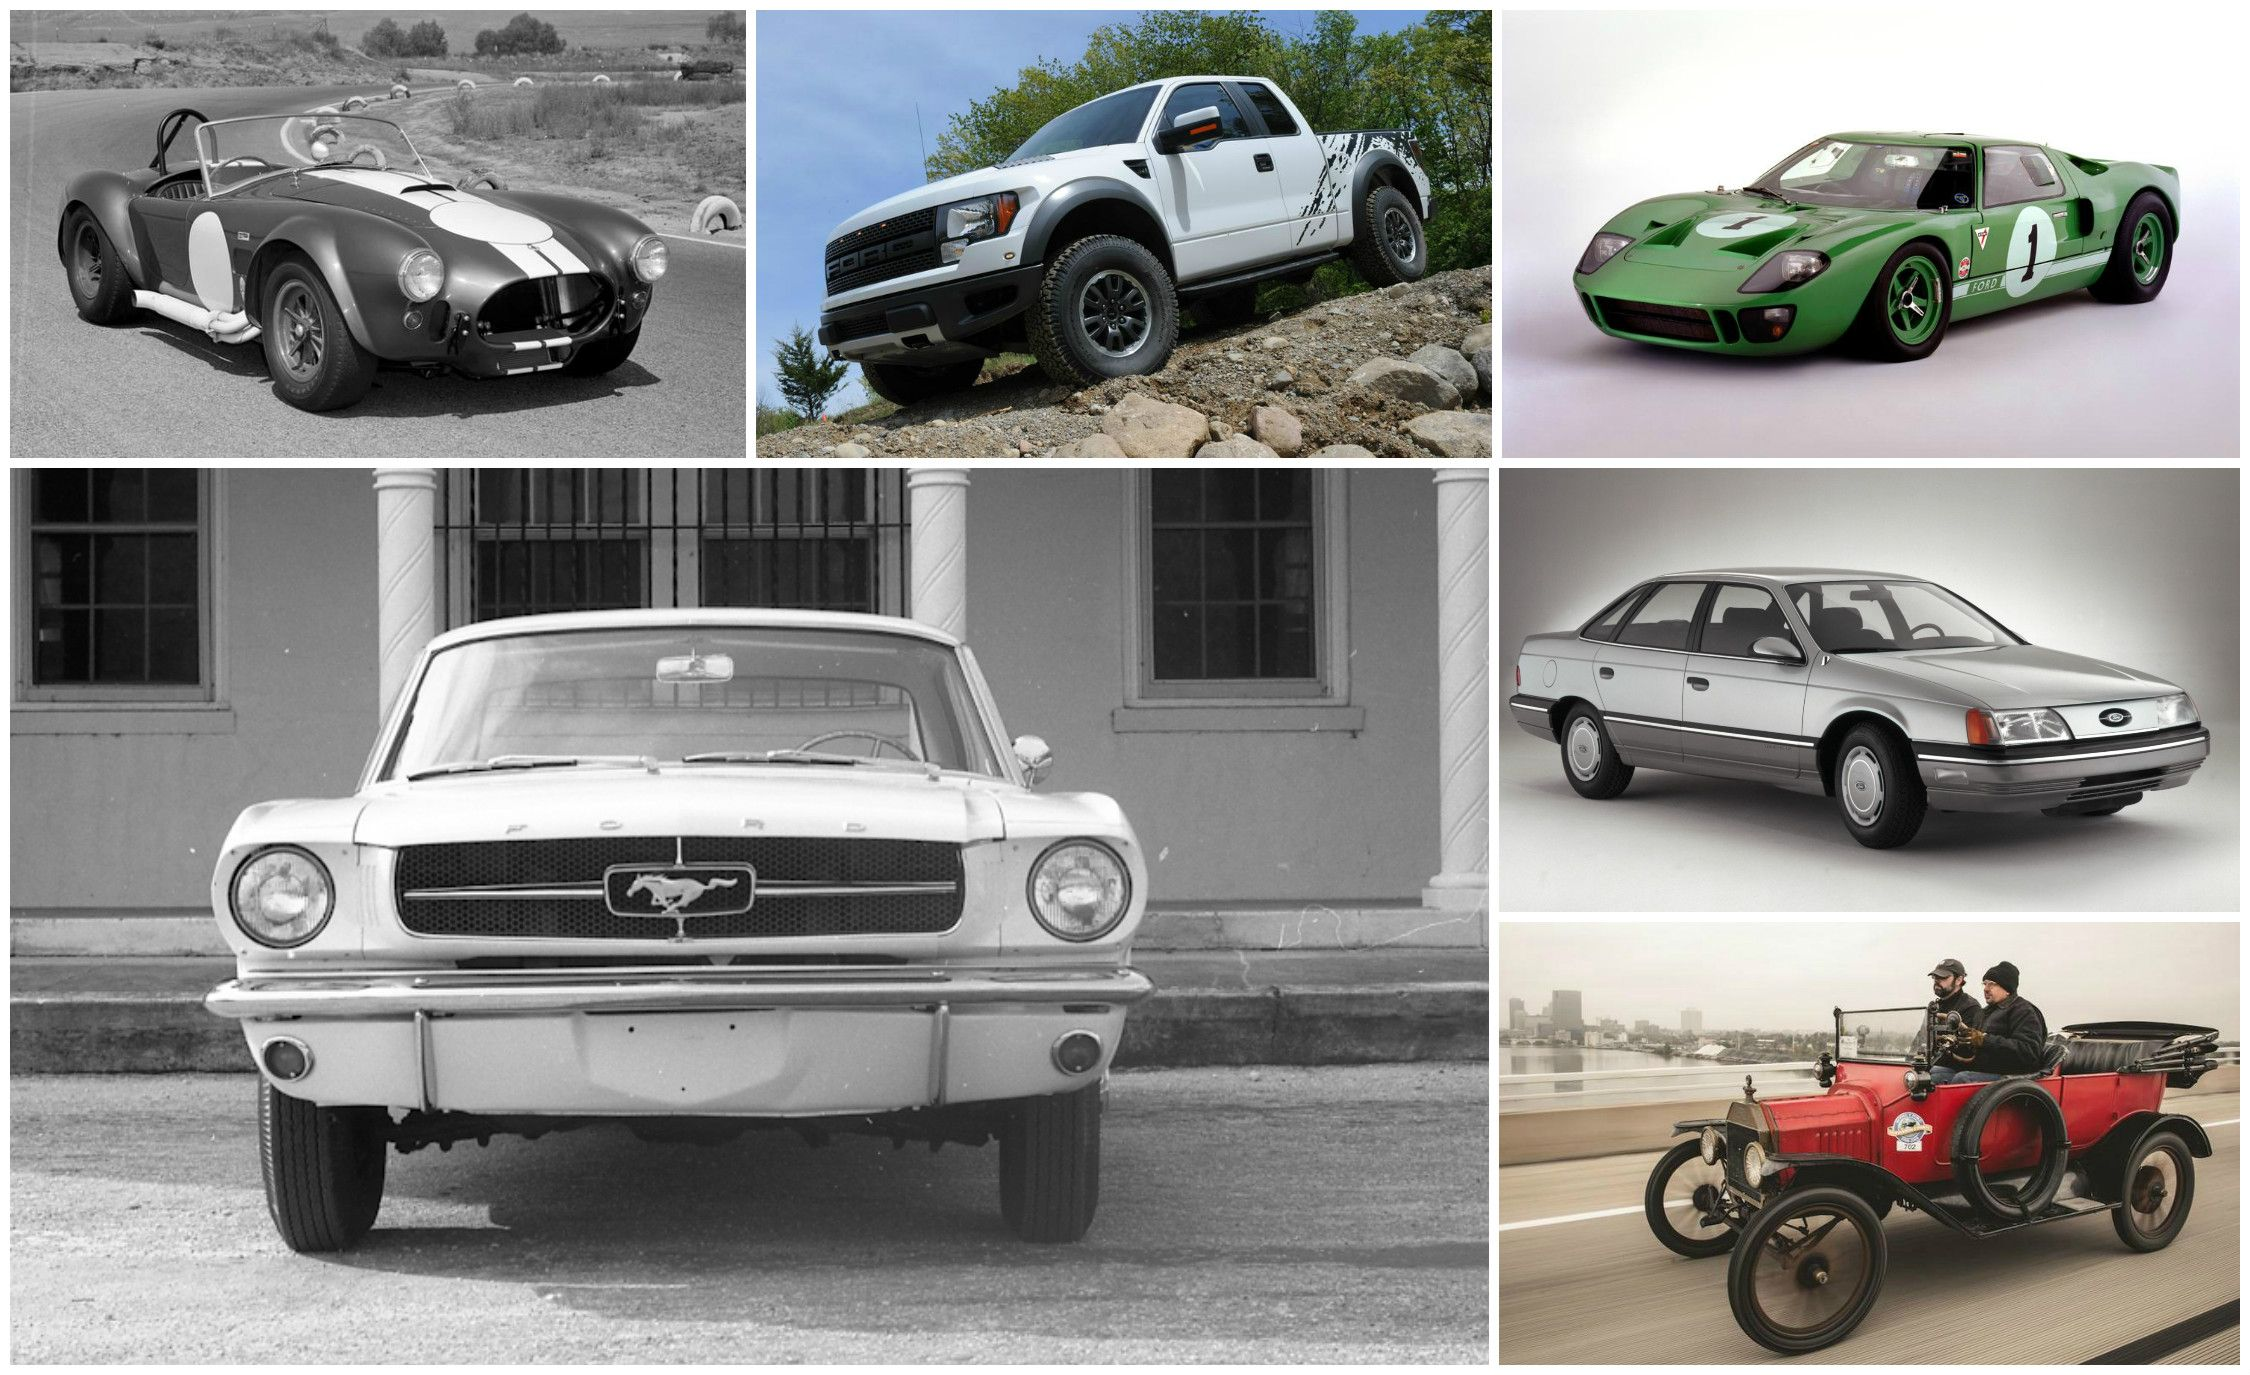 20 Best Classic Ford Cars of All Time - Old Ford Trucks We Still Love